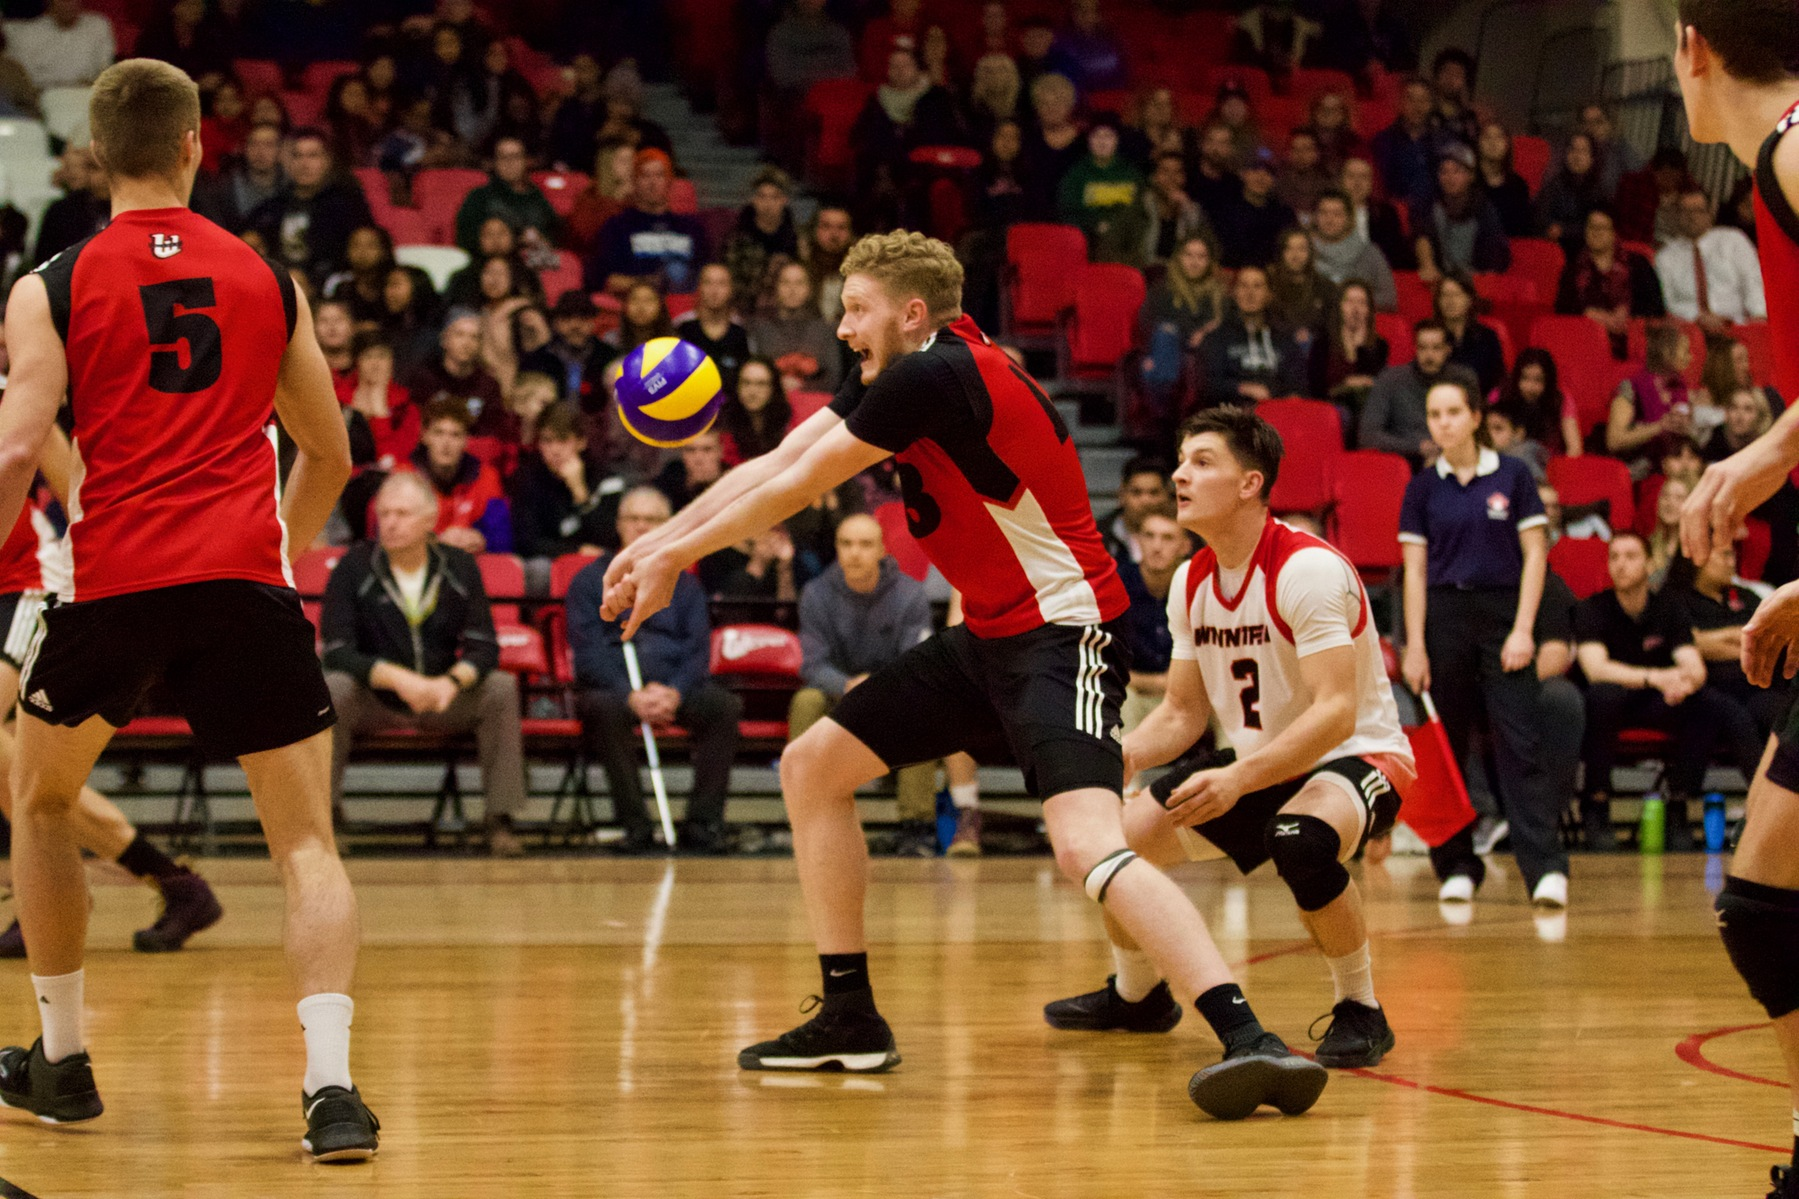 Left side Ethan Duncan receives a serve in the first half of the Wesmen's match against the Trinity Western Spartans, Nov. 9, 2018. (David Larkins/Wesmen Athletics)